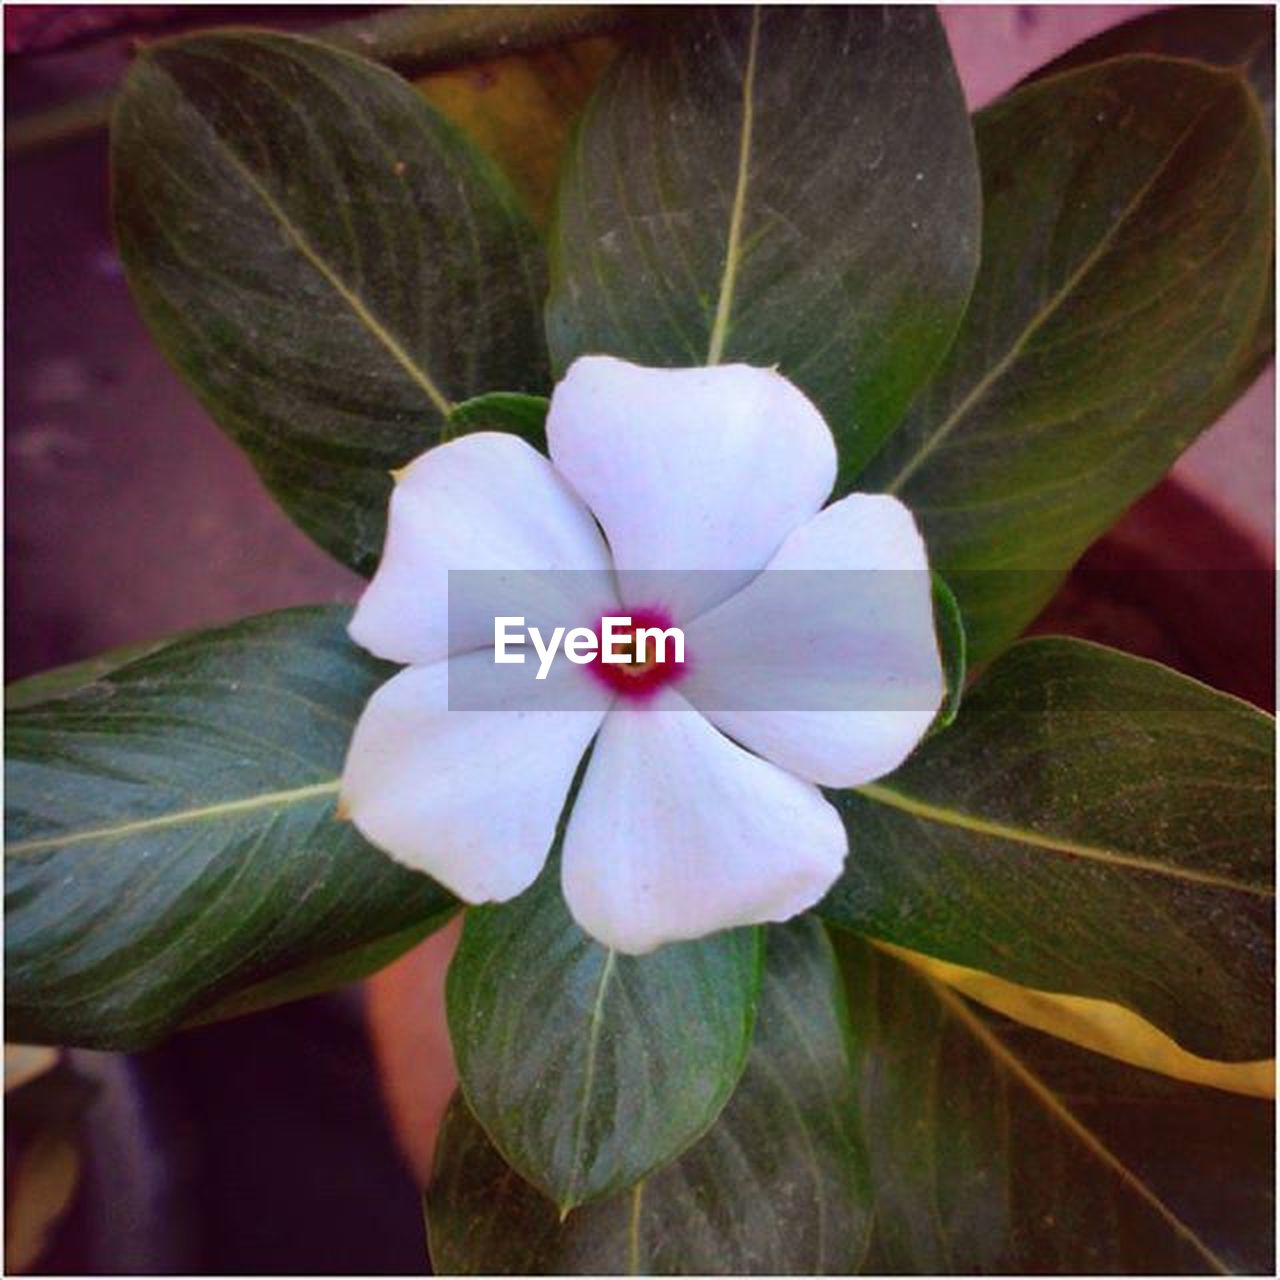 plant, flower, flowering plant, freshness, close-up, beauty in nature, vulnerability, petal, fragility, inflorescence, growth, flower head, plant part, leaf, no people, nature, focus on foreground, day, botany, pollen, purple